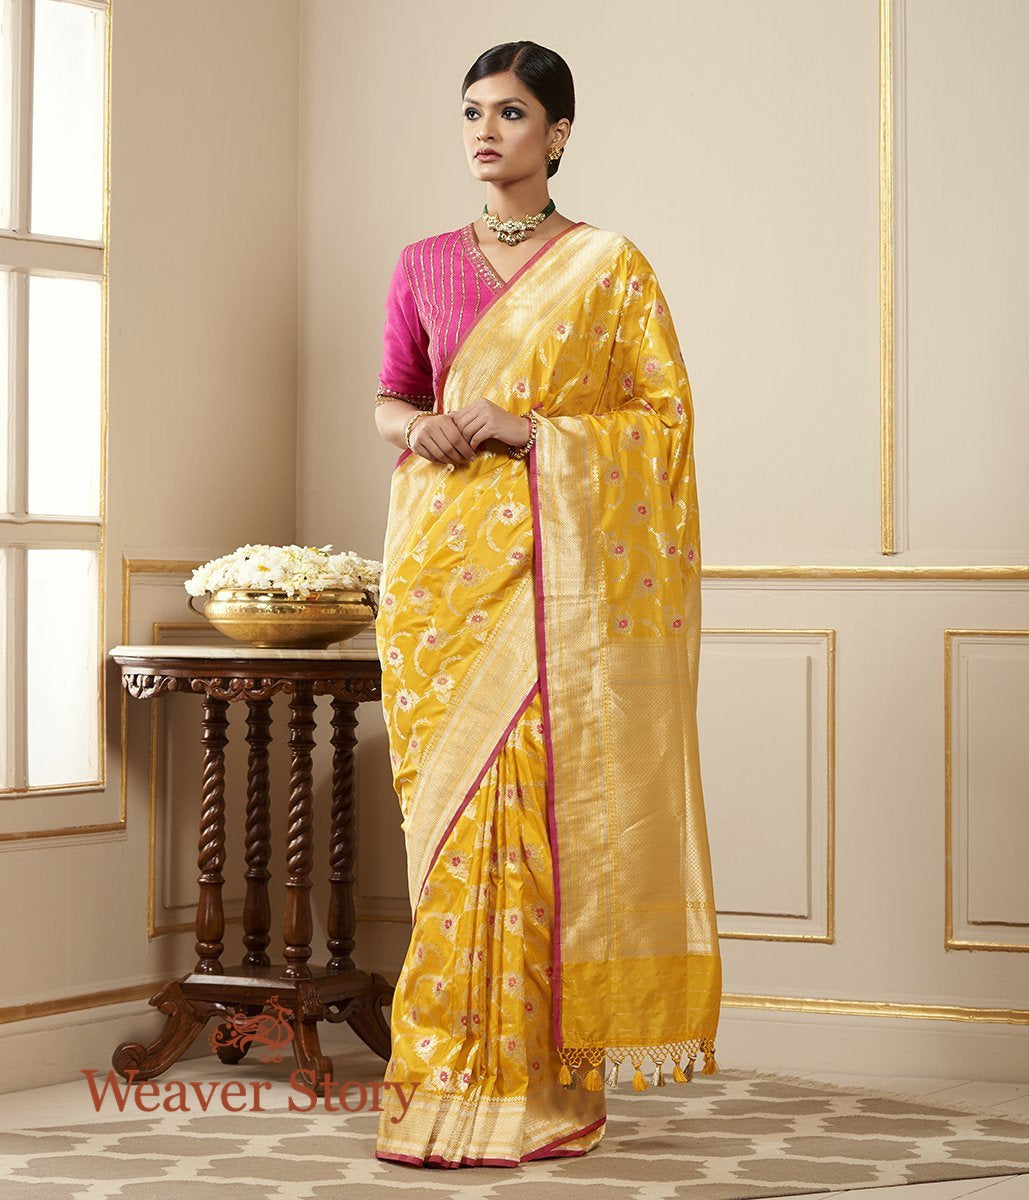 Handwoven Yellow Meenakari Cutwork Jangla Saree